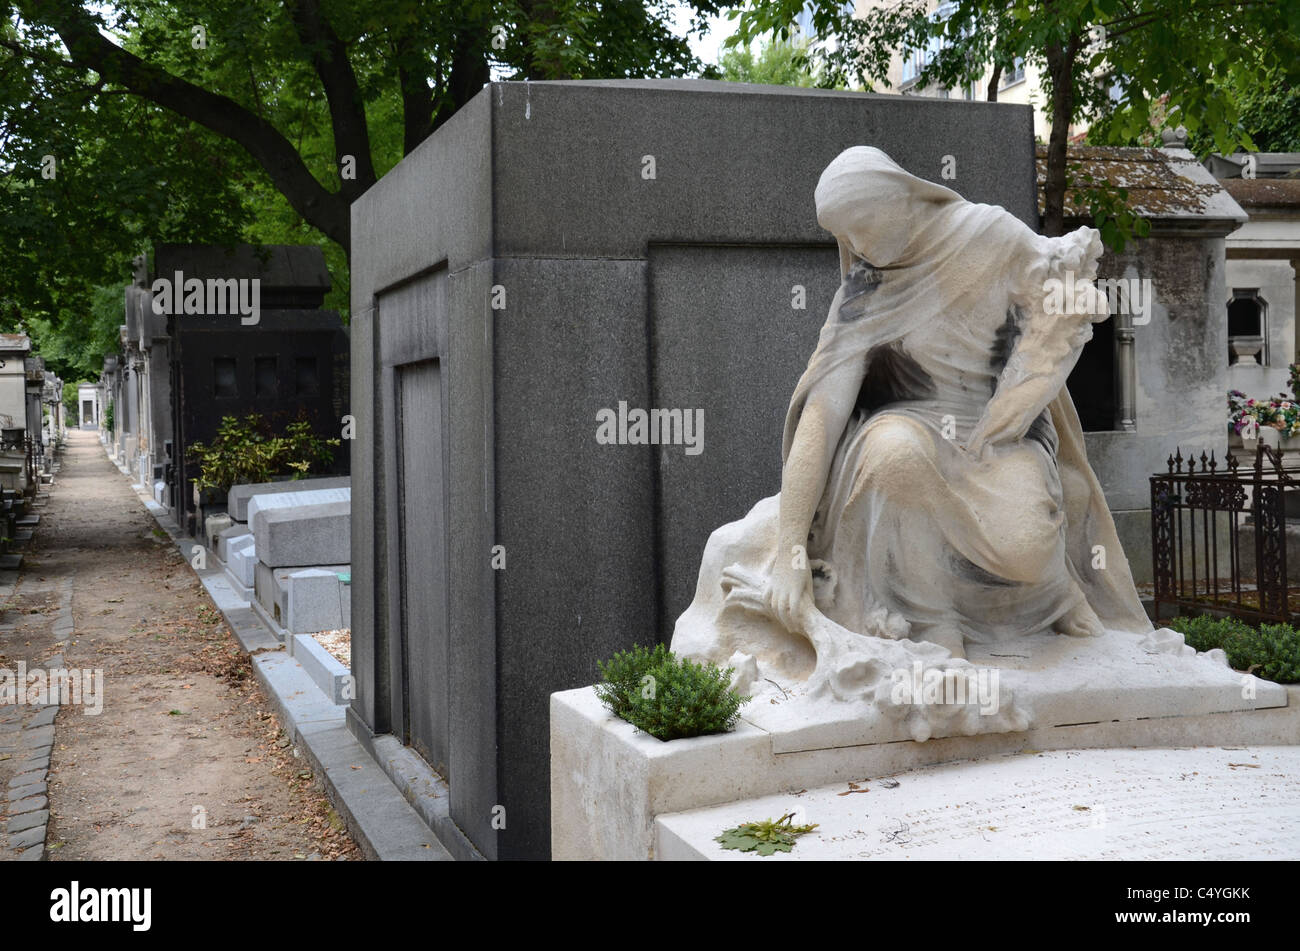 The statue of a woman in mourning lays flowers on a grave in Montmartre Cemetery, Paris, France. - Stock Image